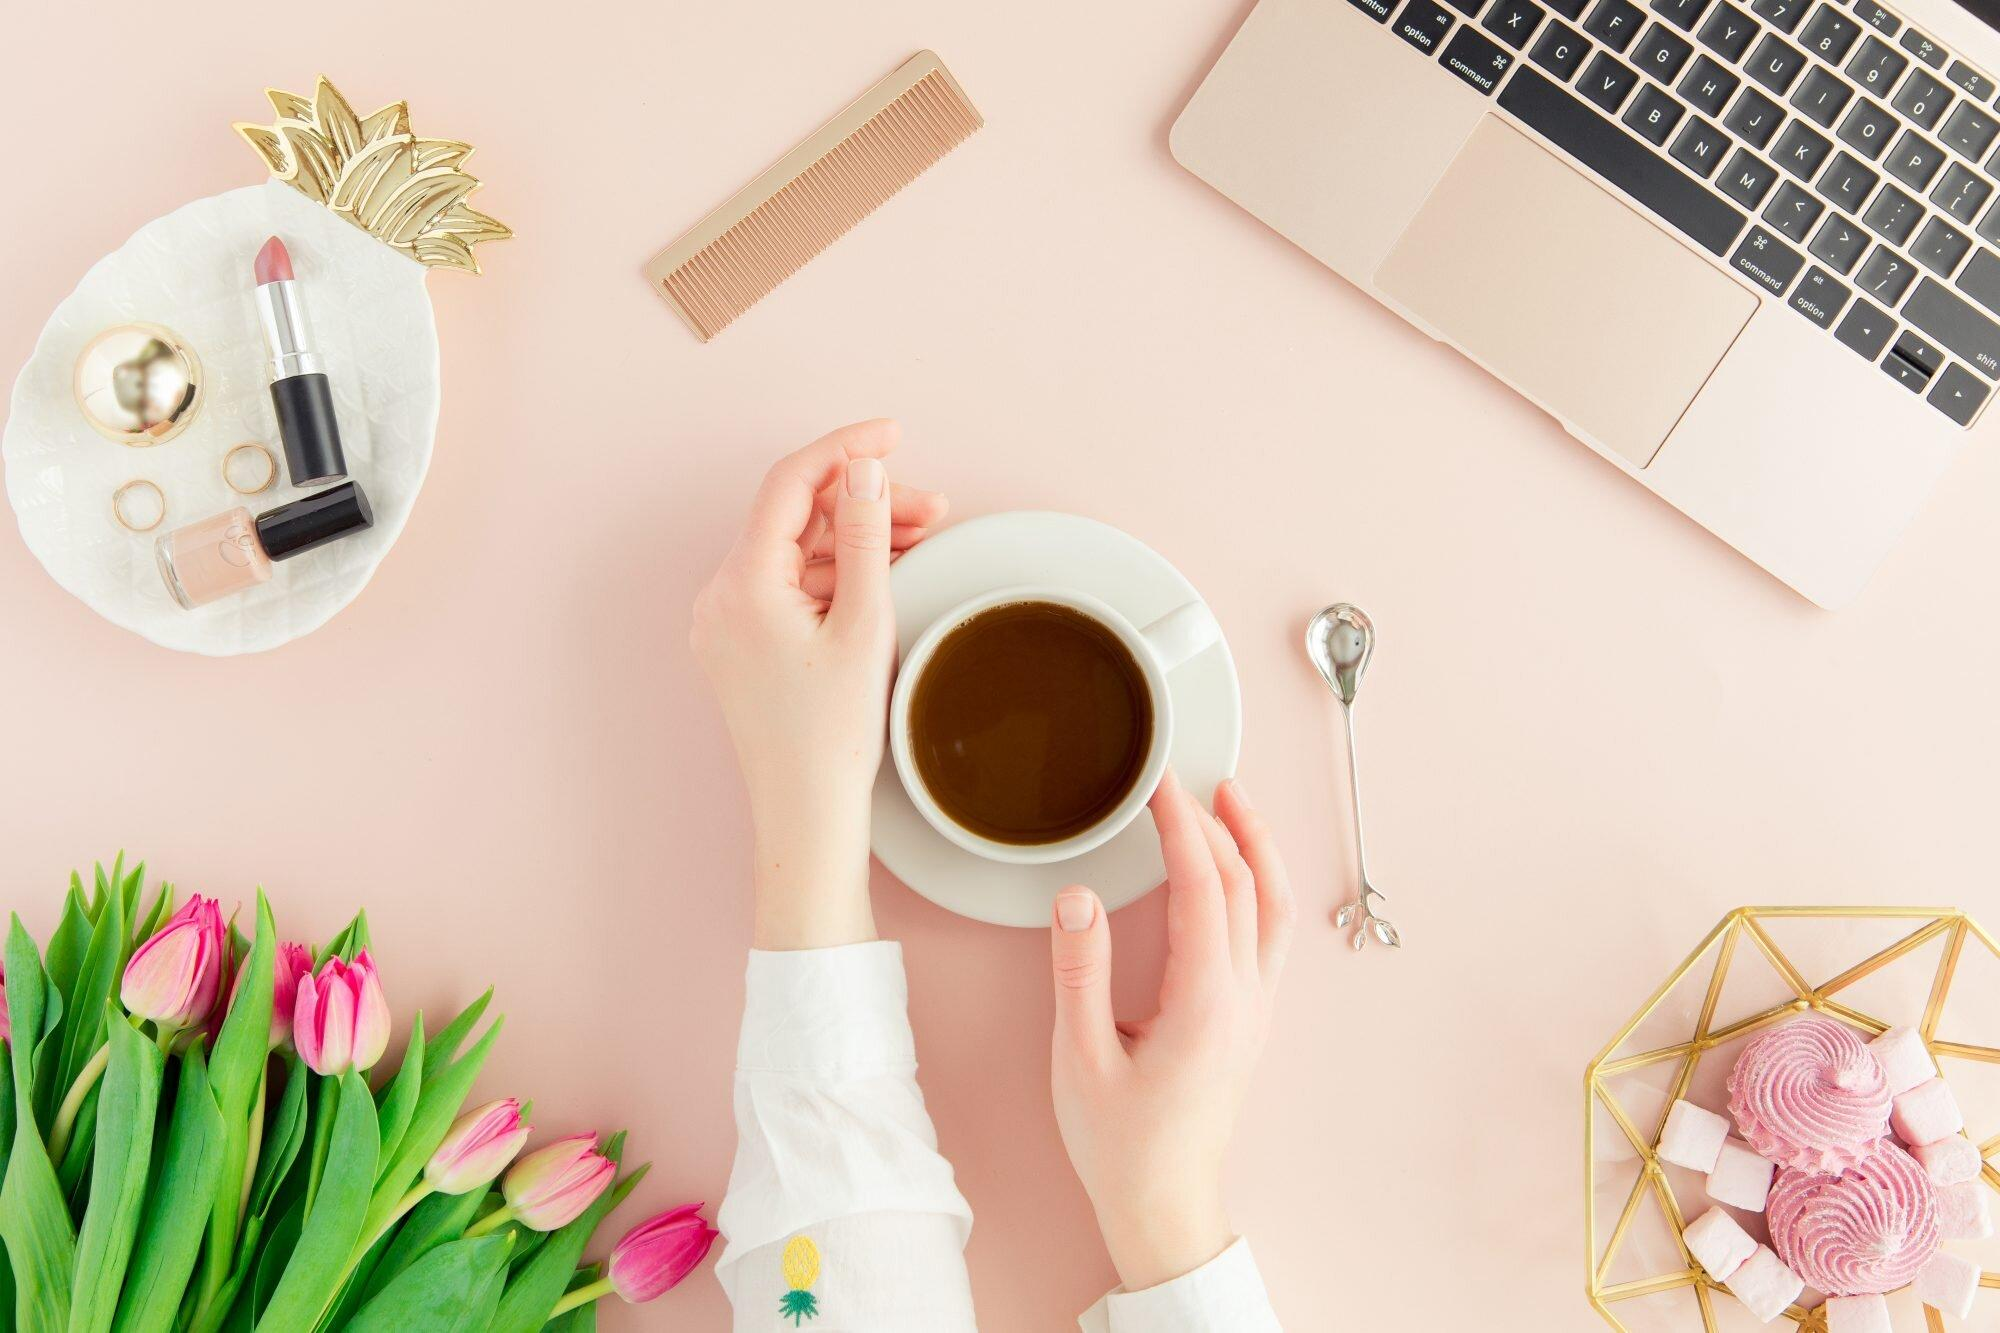 12 Simple Wellness Habits to Try Weaving Into Your Workdays